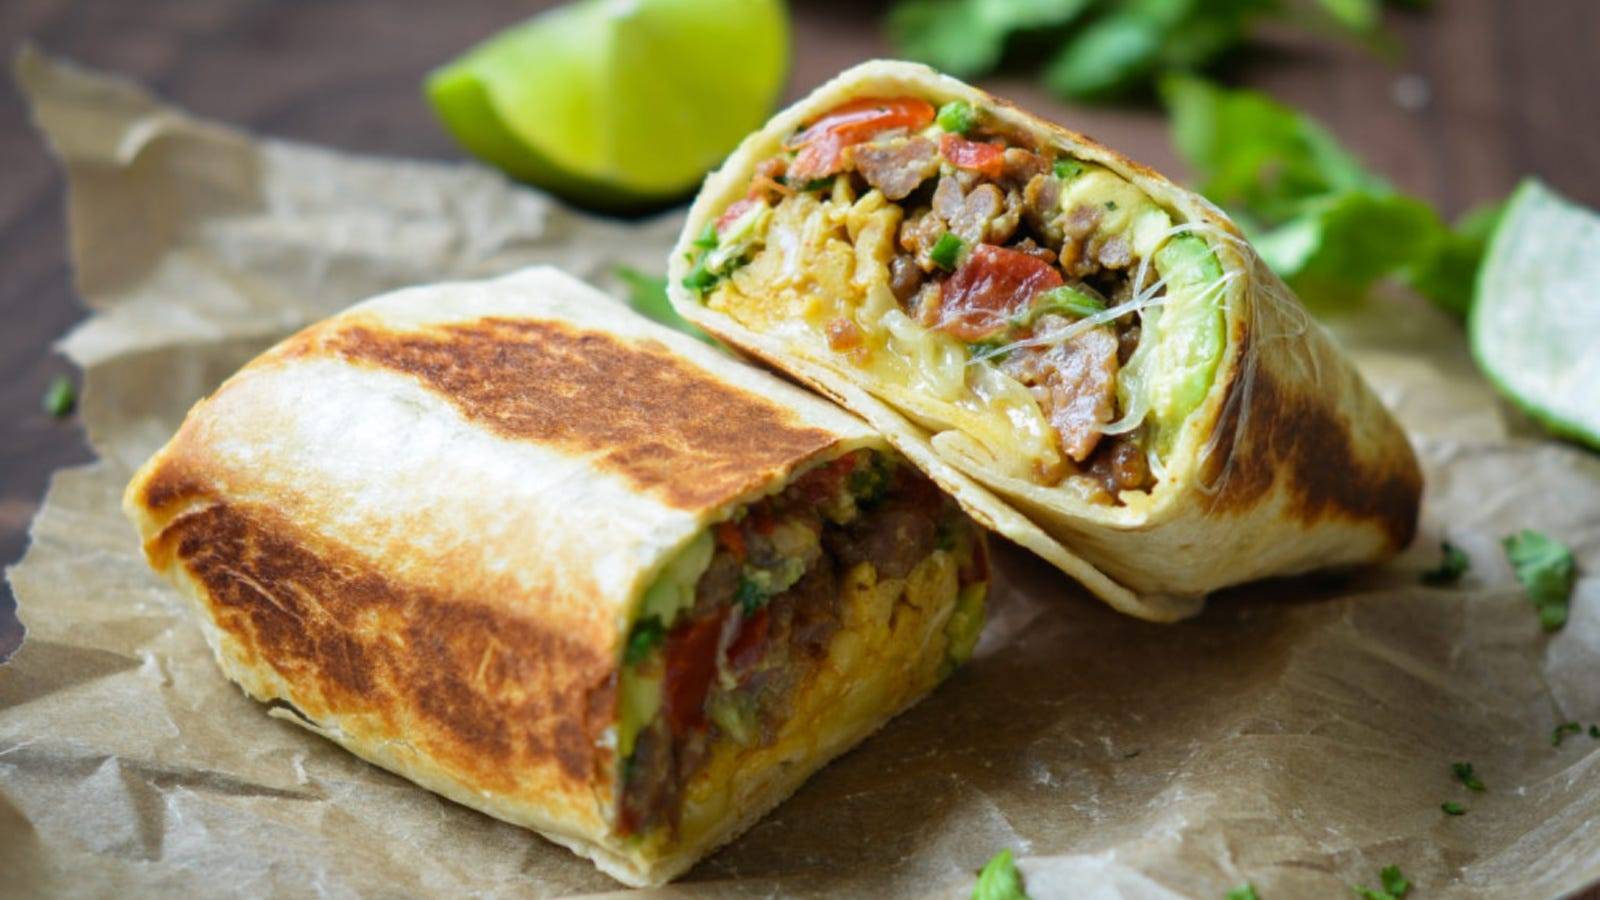 A breakfast burrito filled with scrambled eggs, peppers, avocado and sausage, cut in half served on parchment paper with fresh cilantro and lime.